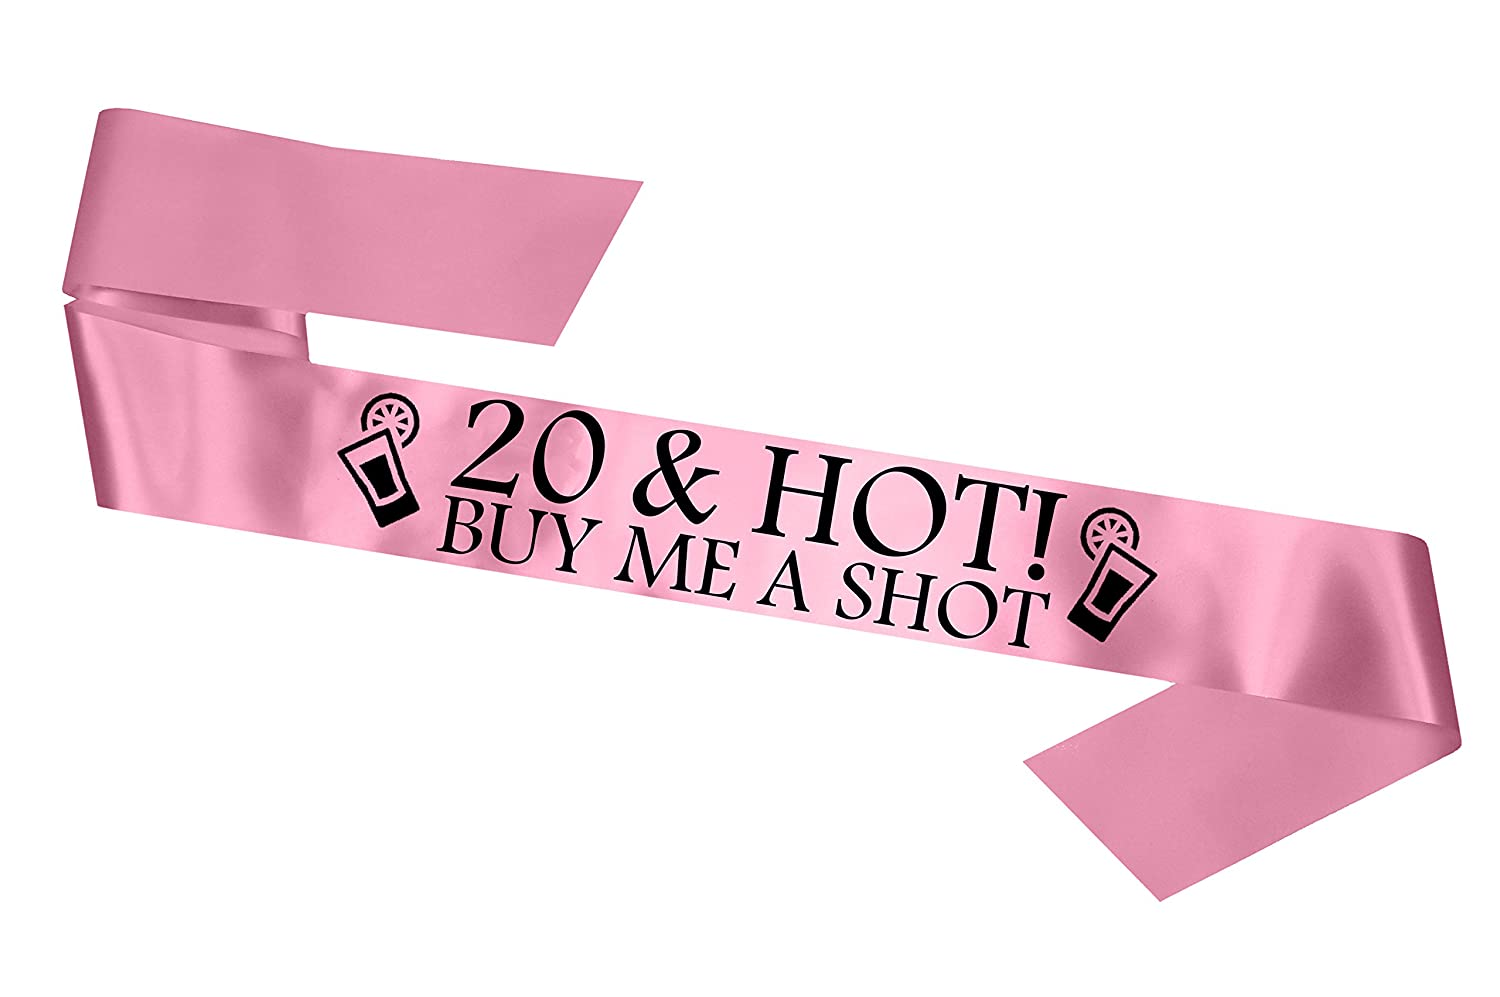 '20 & Hot - Buy me a Shot!' Party Sash 20th Birthday Night Going Out Sashes Accessory Gift Badge Novelty - Baby Pink Fancy Pants Store Ltd